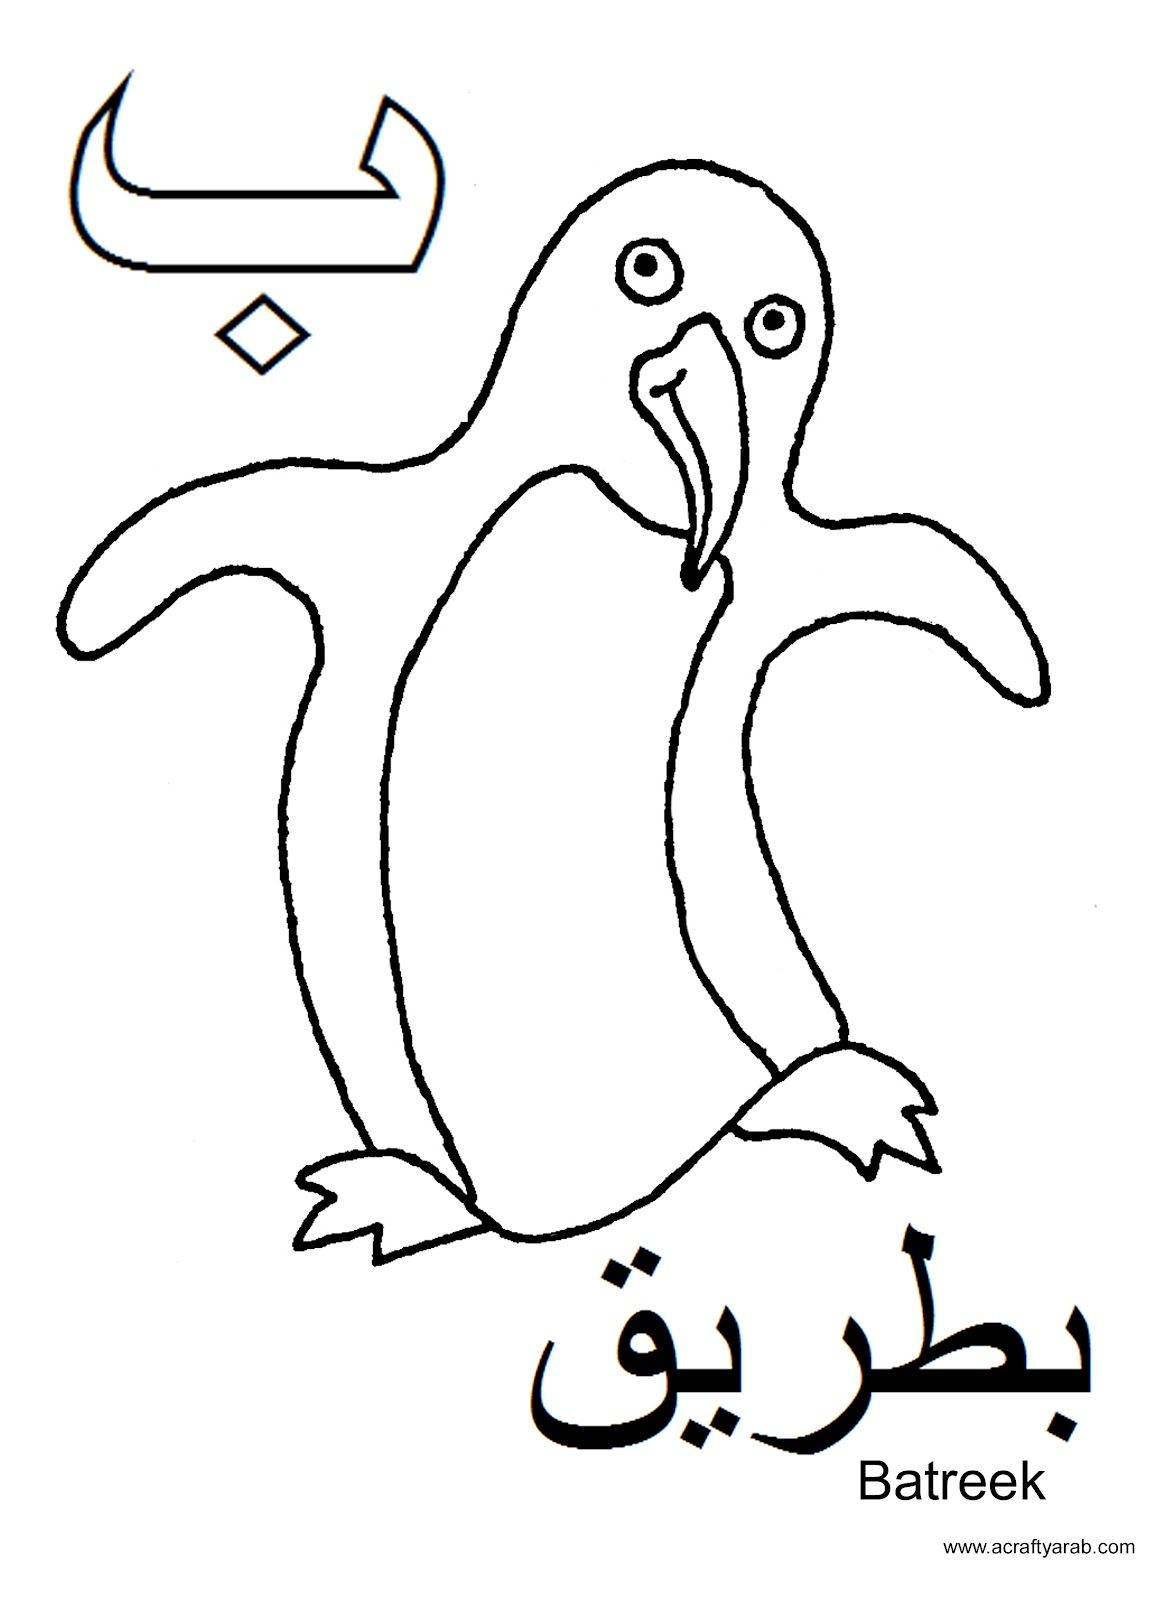 A Crafty Arab Arabic Alphabet Coloring Pages A Is For Batreek